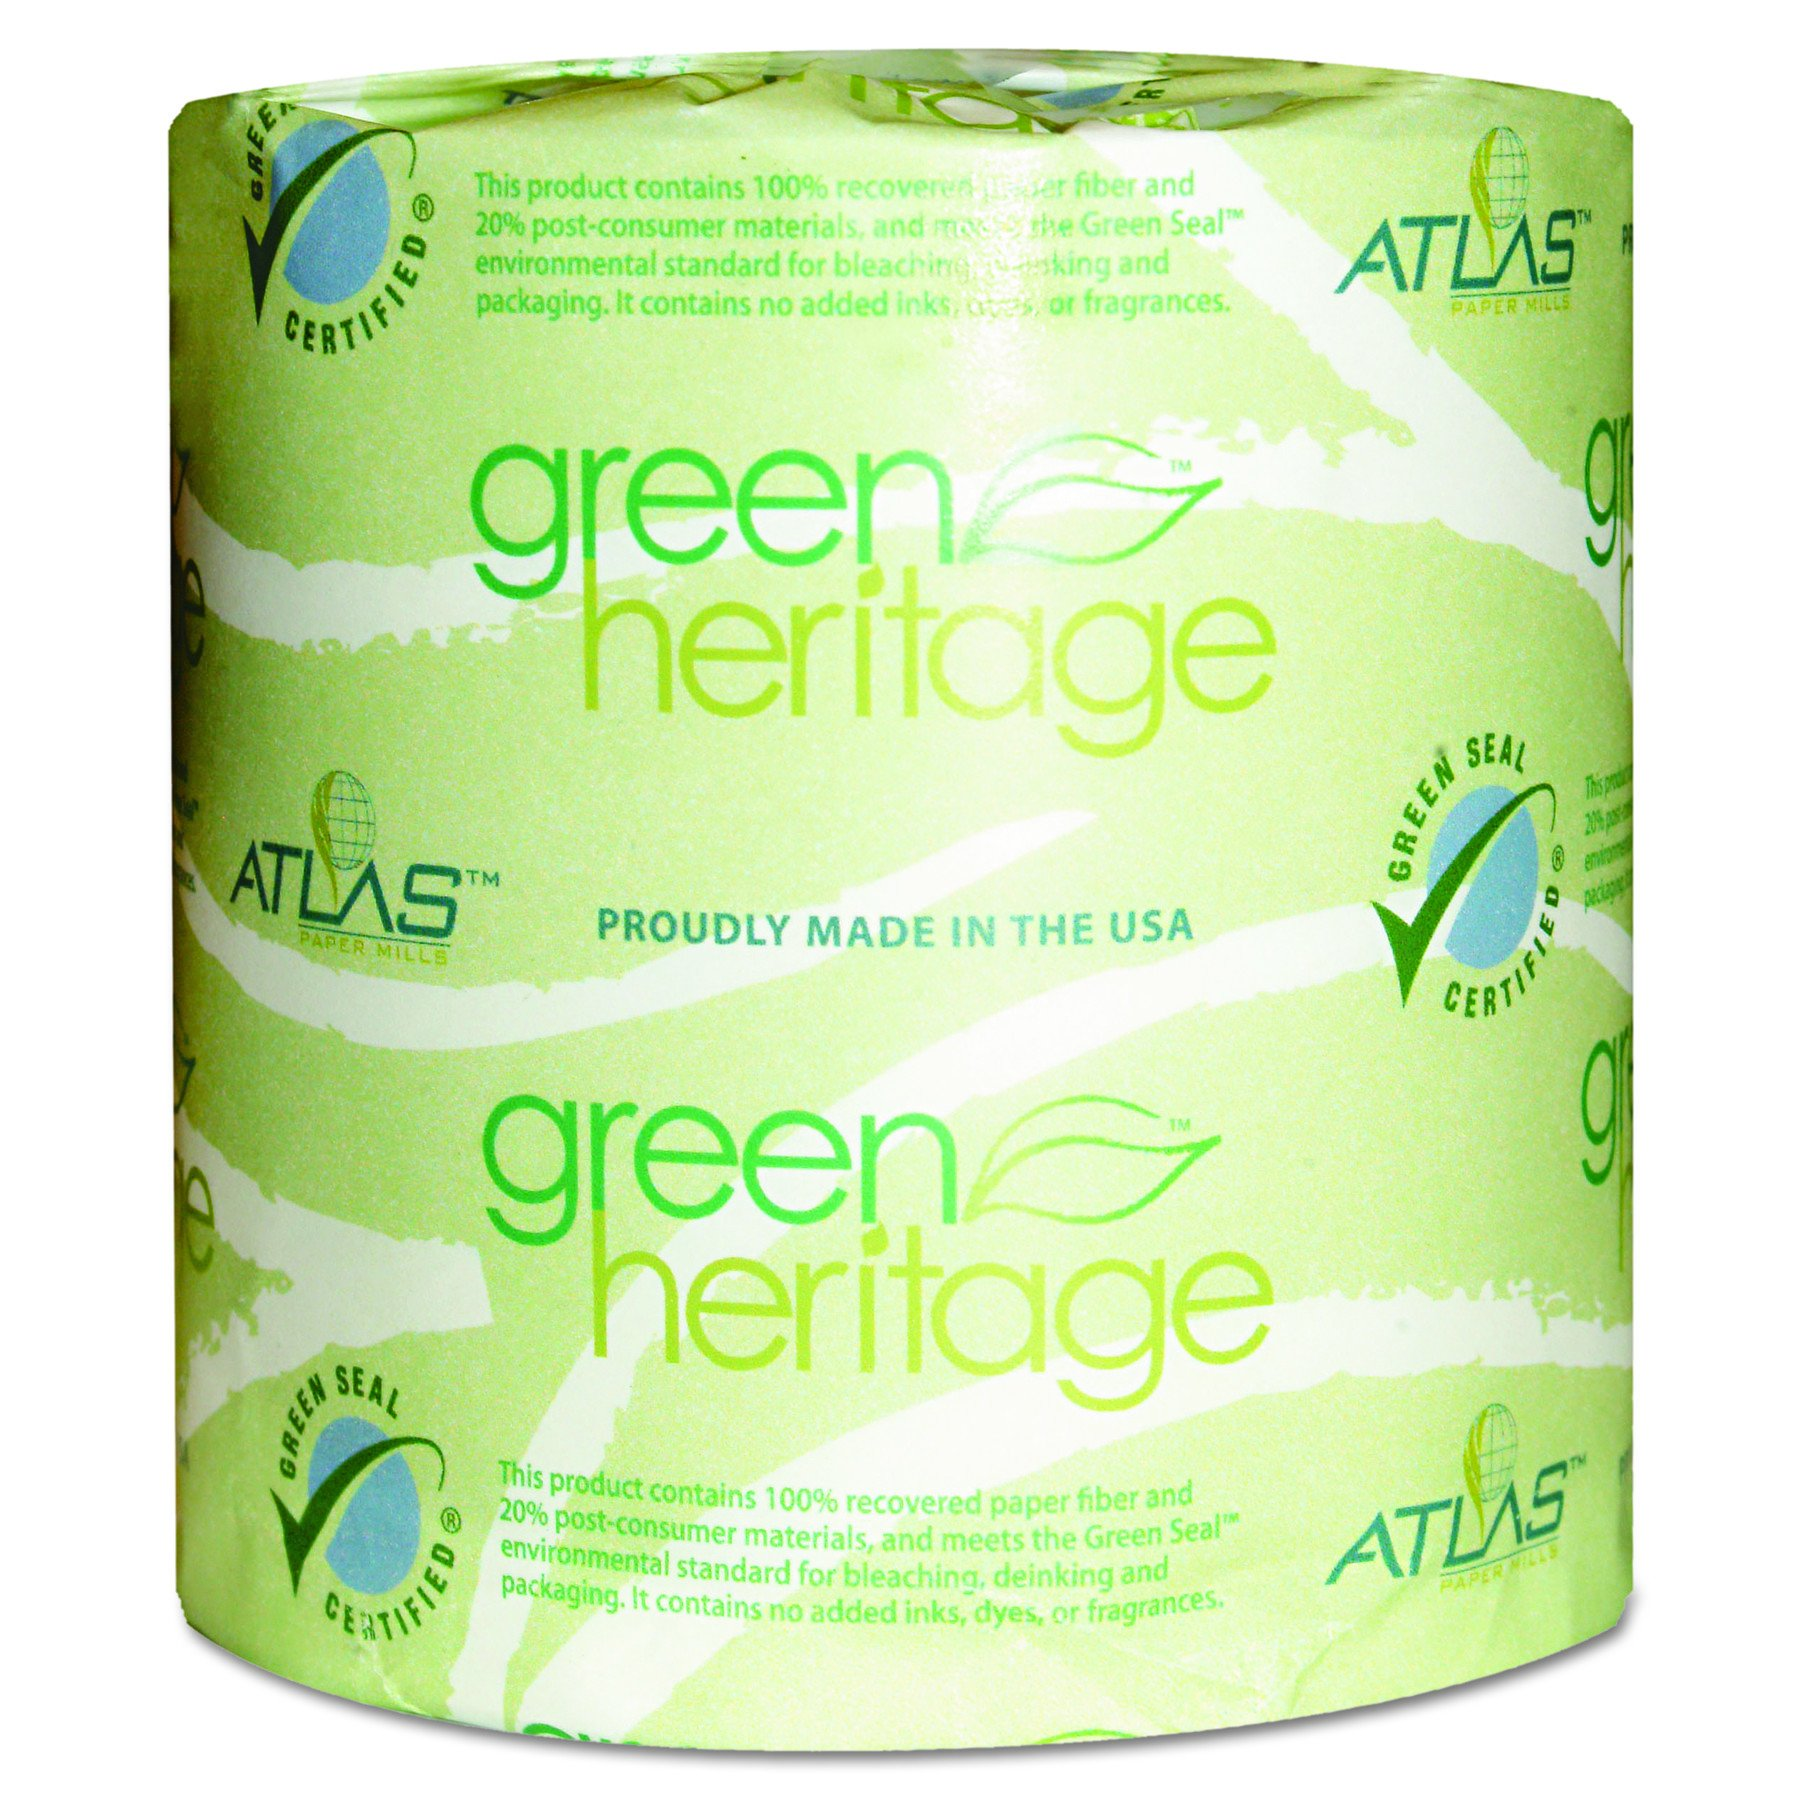 Atlas Paper Mills 280GREEN Green Heritage Toilet Tissue, 4 1/2 x 4 1/2 Sheets, 2-Ply, 500 Sheets per Roll (Case of 80 Rolls) by Green Heritage